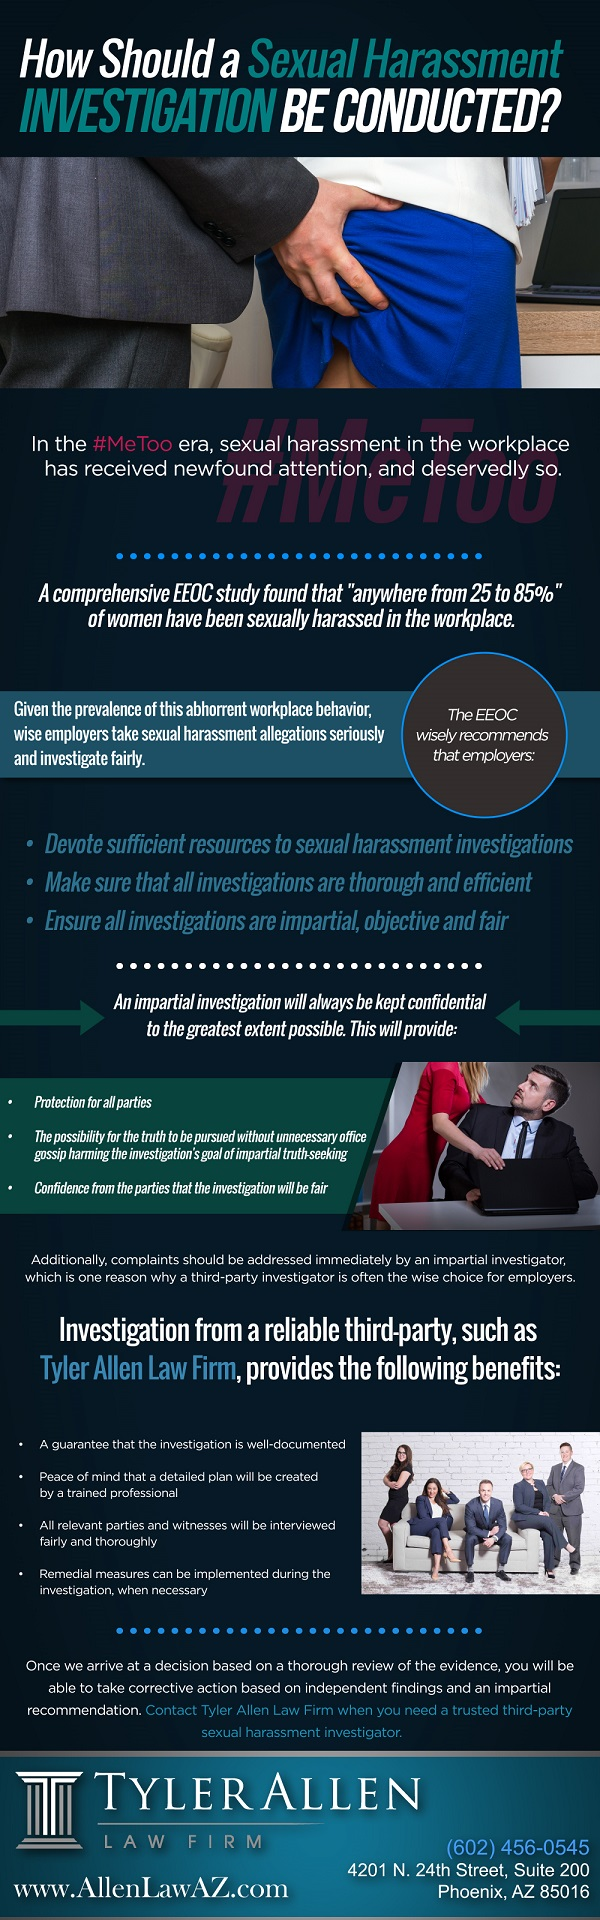 Sexual-Harassment-Investigation.jpg